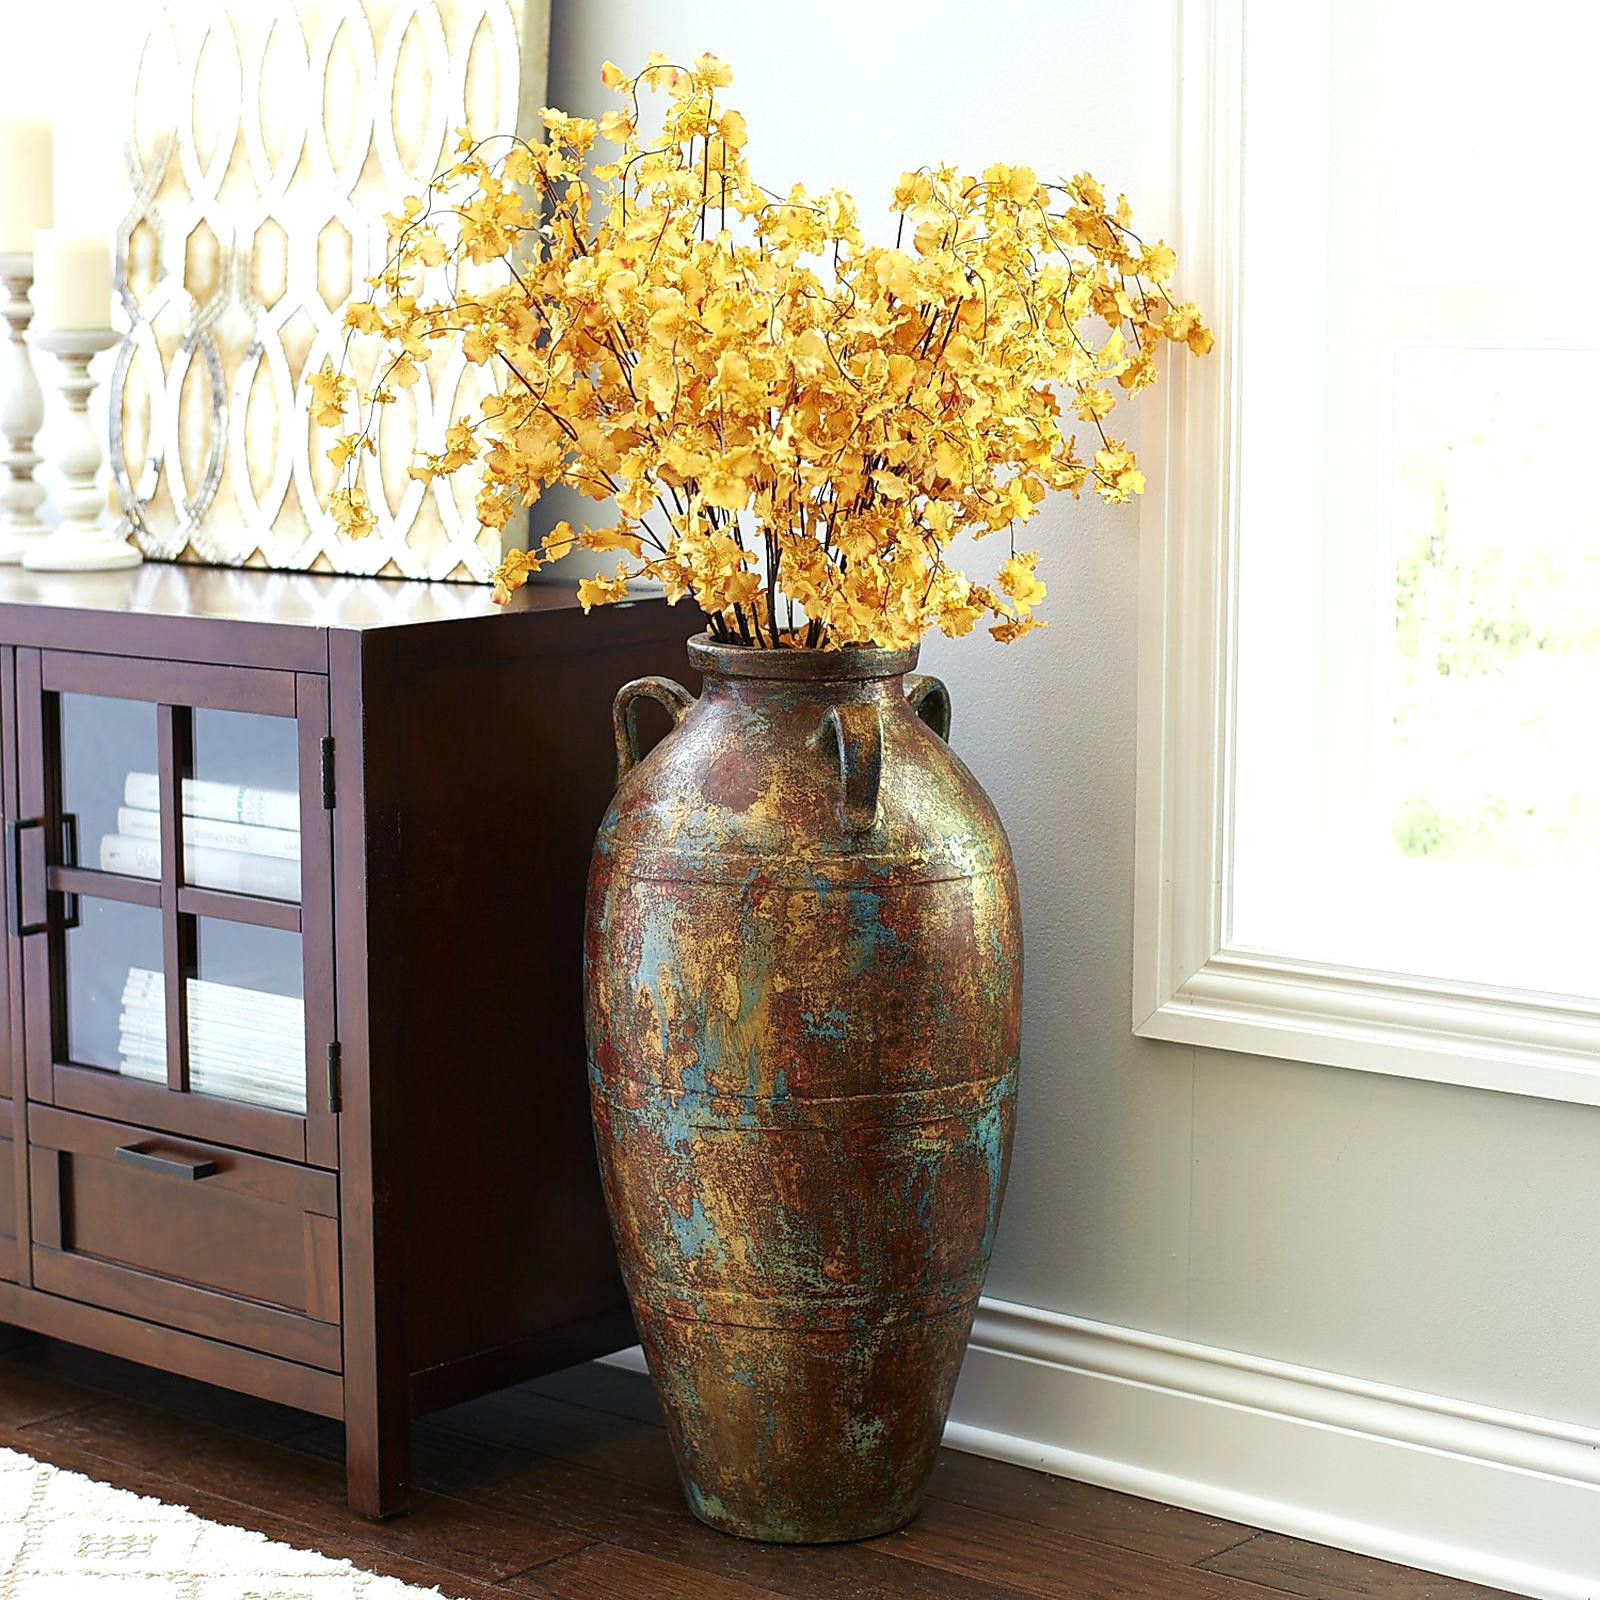 11 Ideal Huge Glass Floor Vase